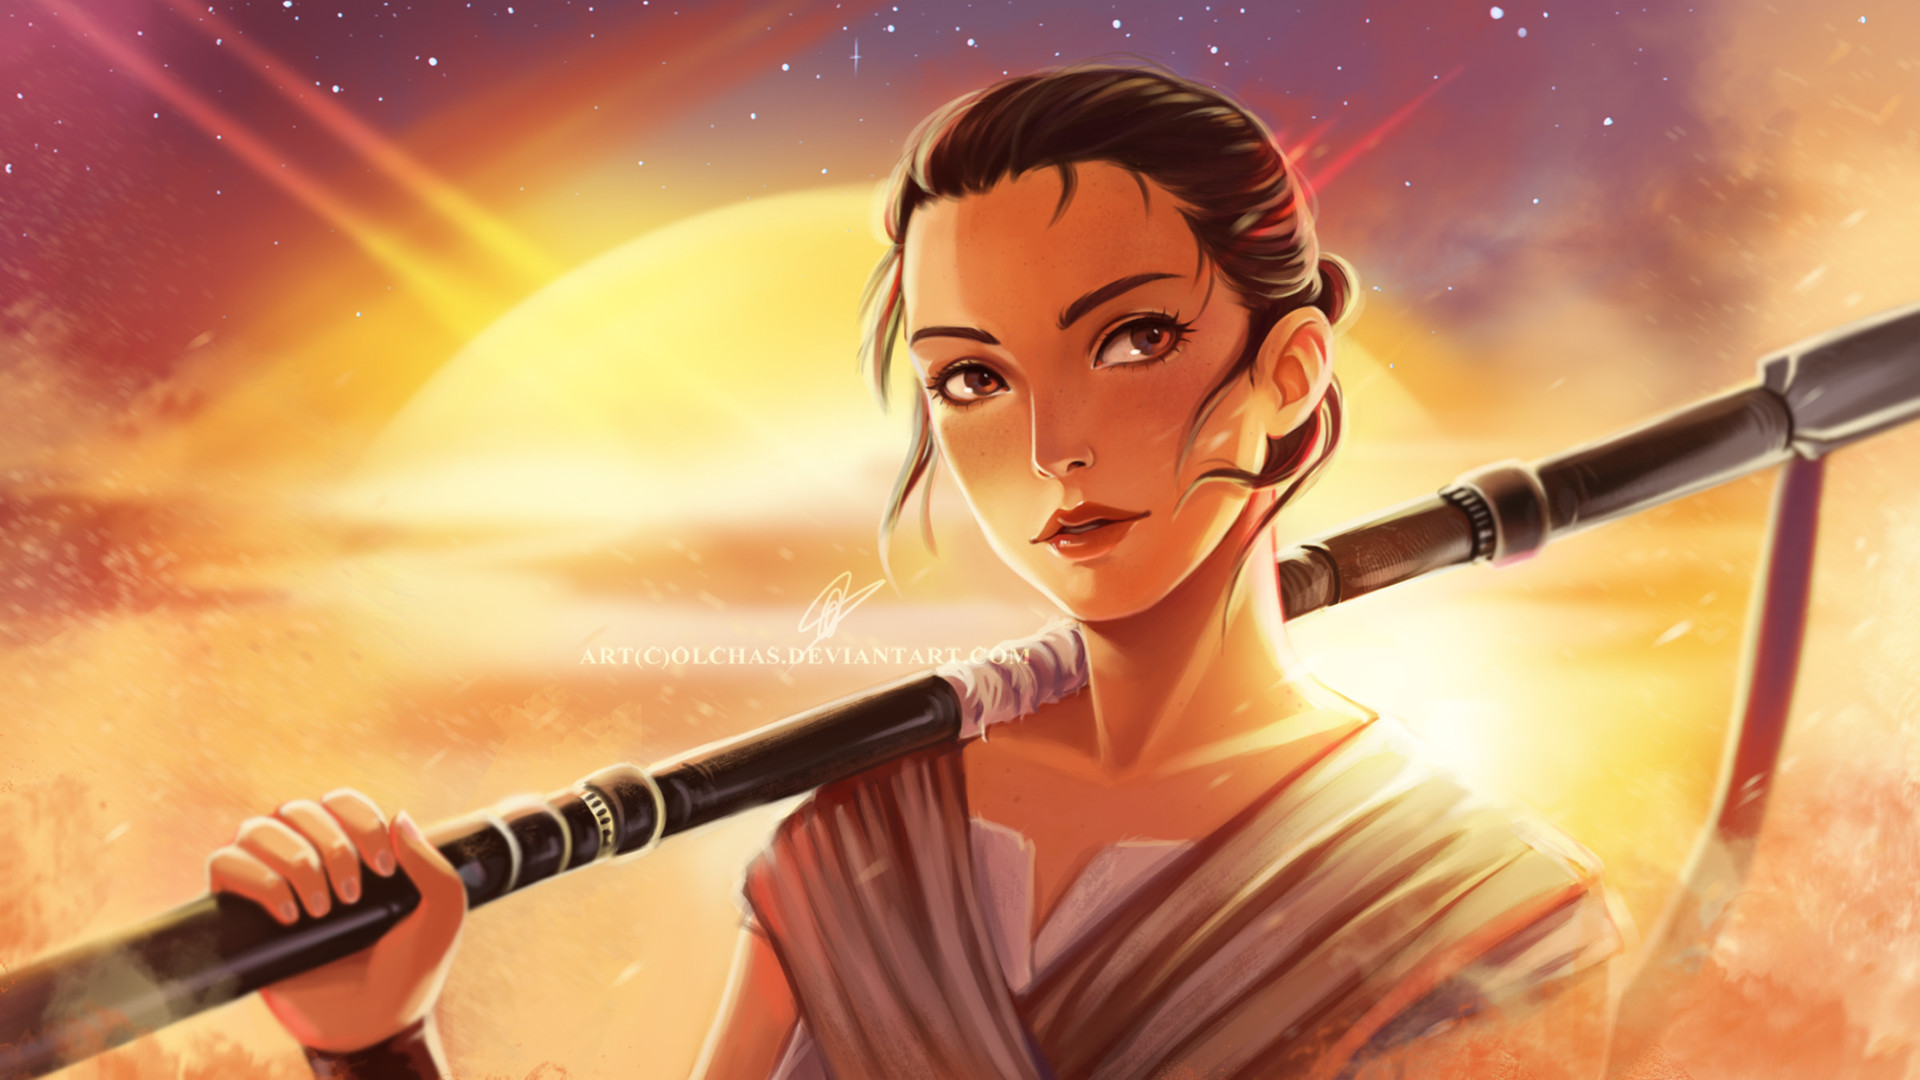 Rey Jedi Background Pictures to Pin on Pinterest – PinsDaddy